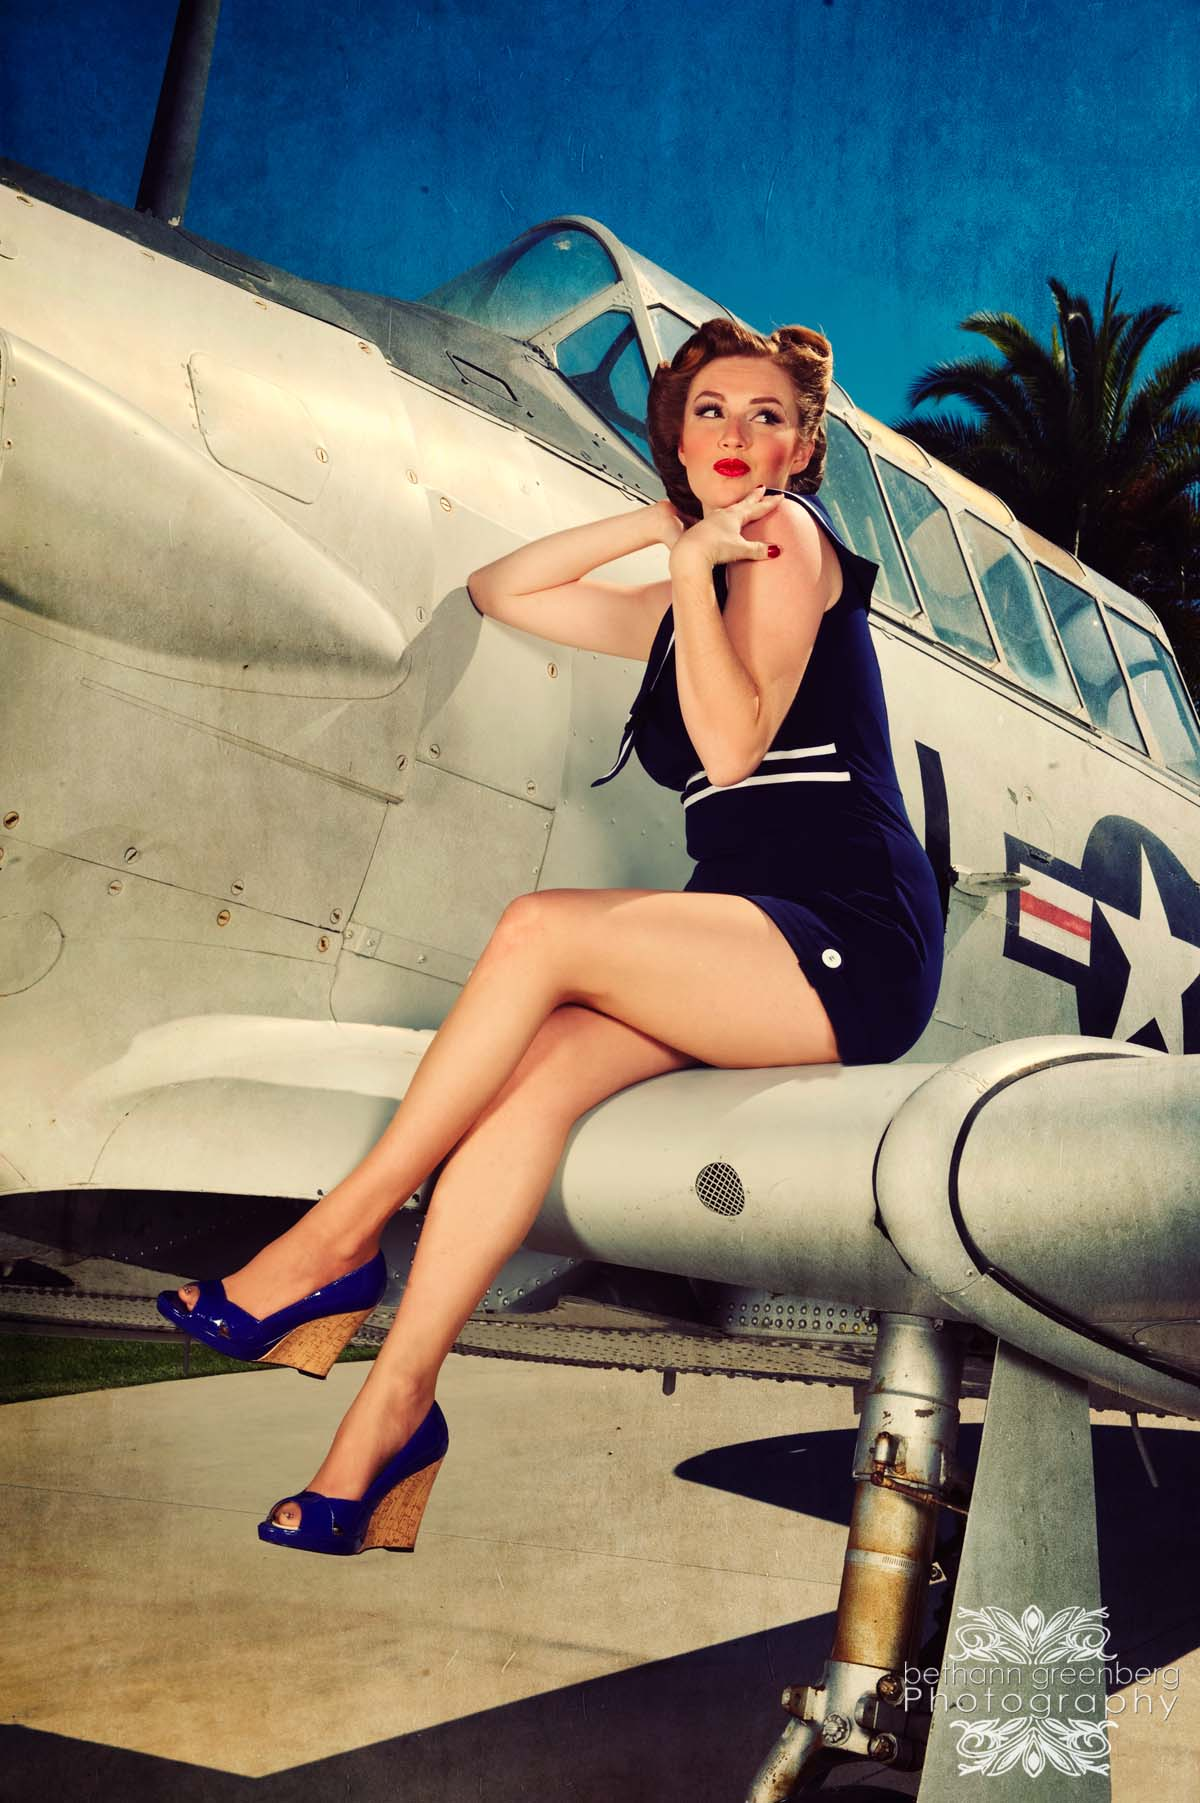 giant rc plane with 40s Pinup Shoot on Item moreover 524036106619830756 besides Best Rc Planes 7SzF4Prq PbnyY56XrPOxnaDbCTLoK8sbmx7gF5ceuk likewise Watch also Farcai26onor.